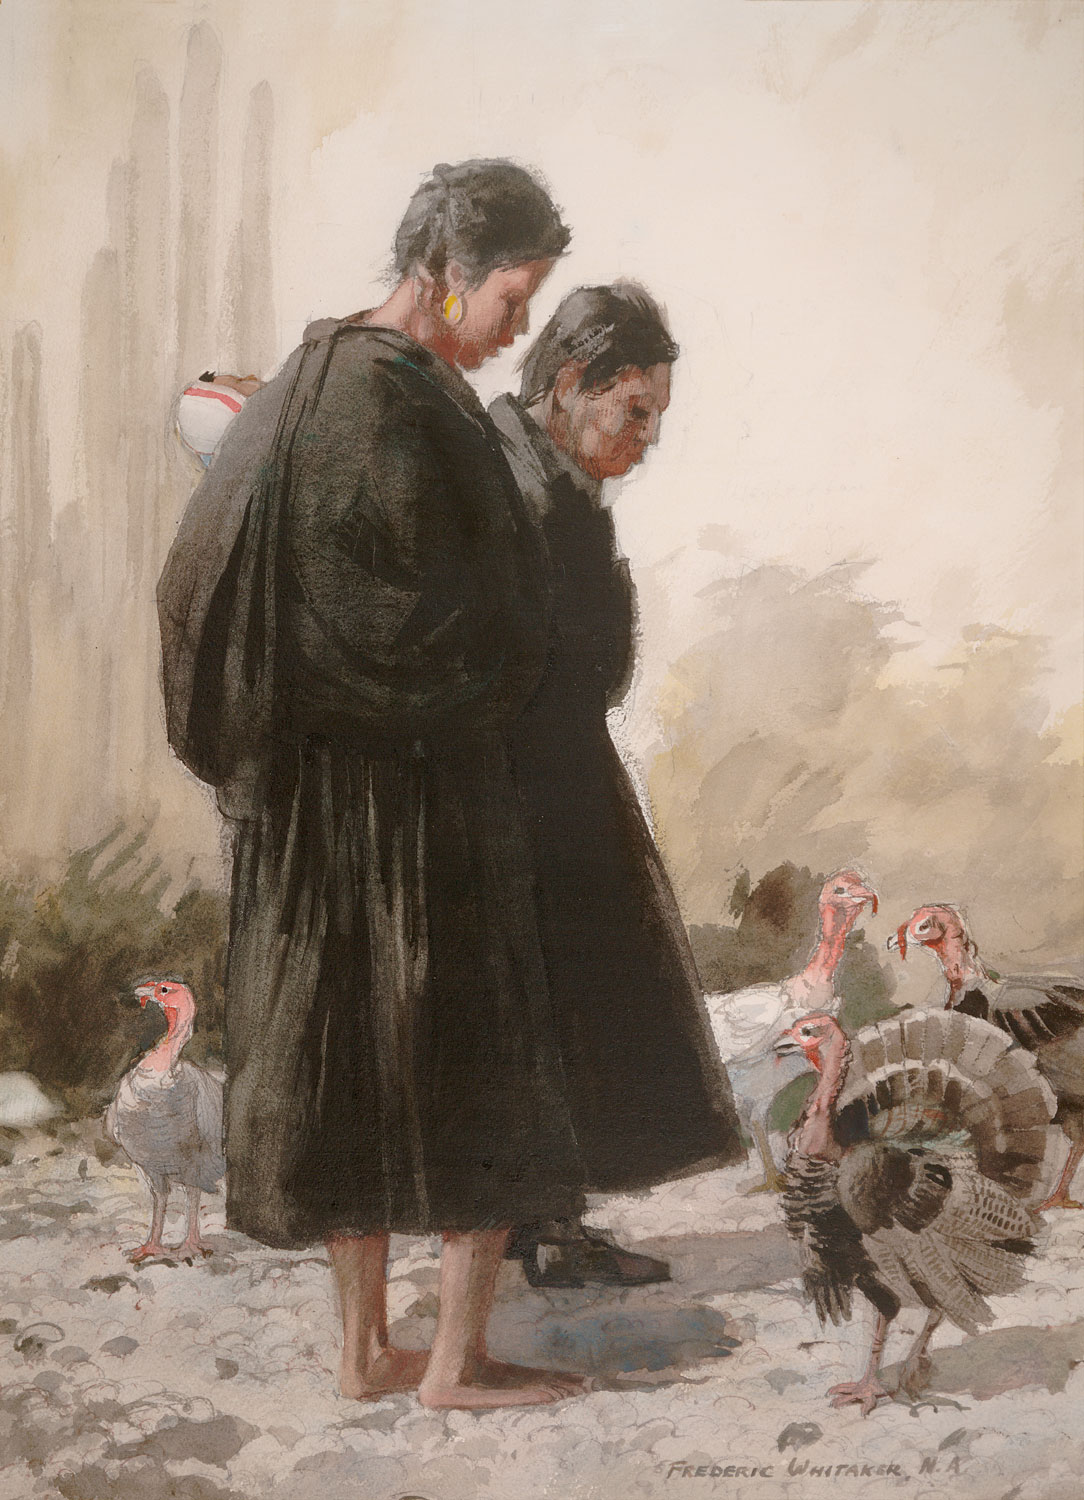 """""""Birdwatchers"""" 1969 © Frederic Whitaker N.A. 30x22 inches Watercolor"""